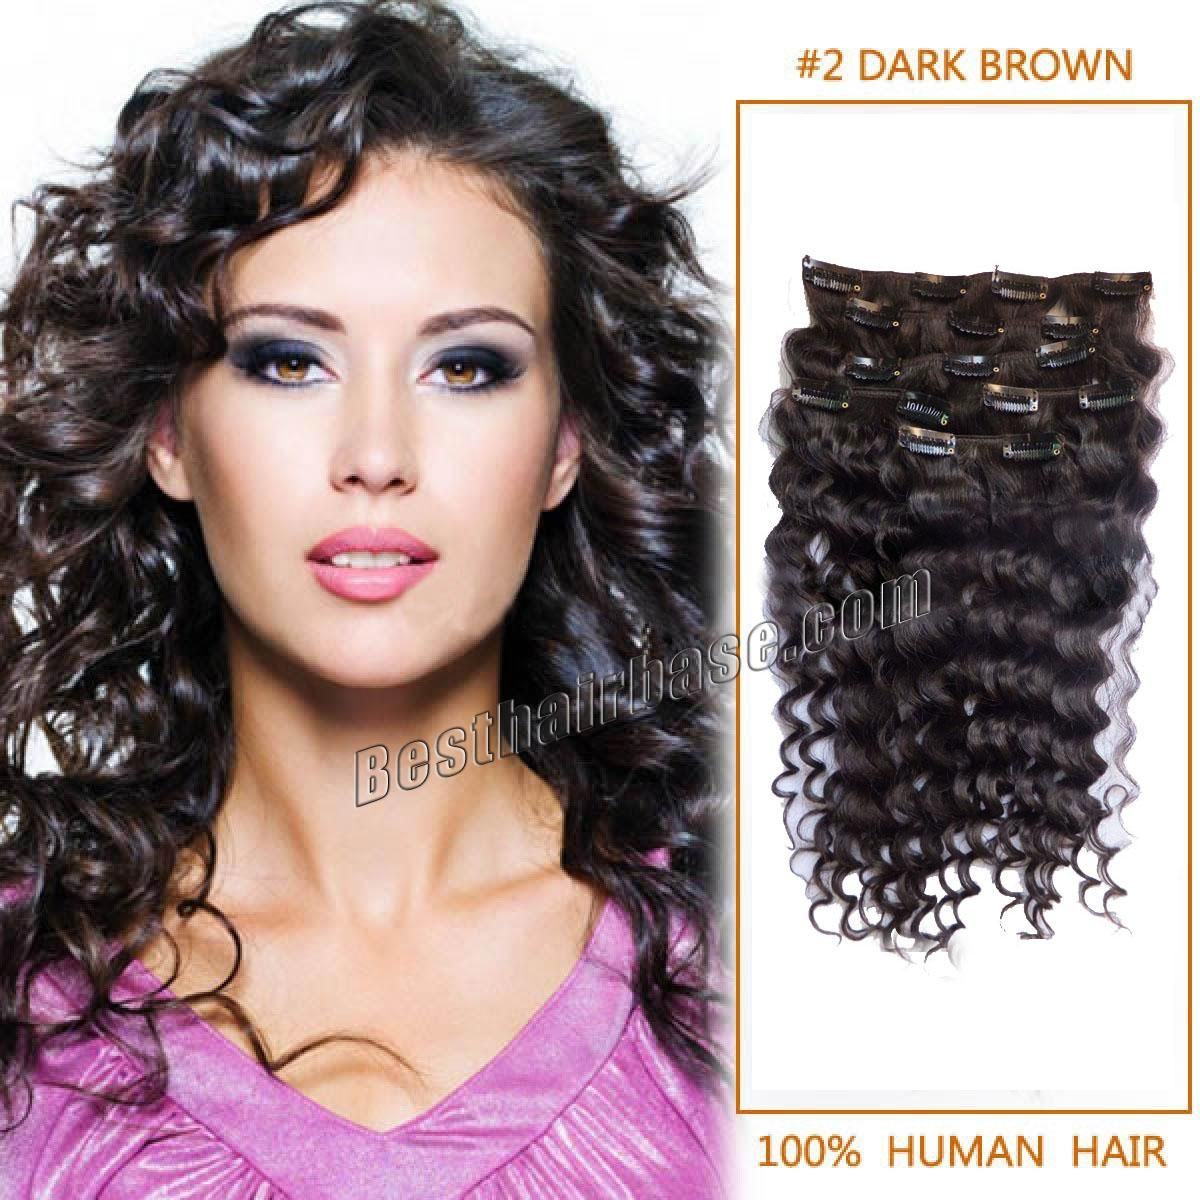 24 Inch Aligned Curly Clip In Hair Extensions Nice 2 Dark Brown 7